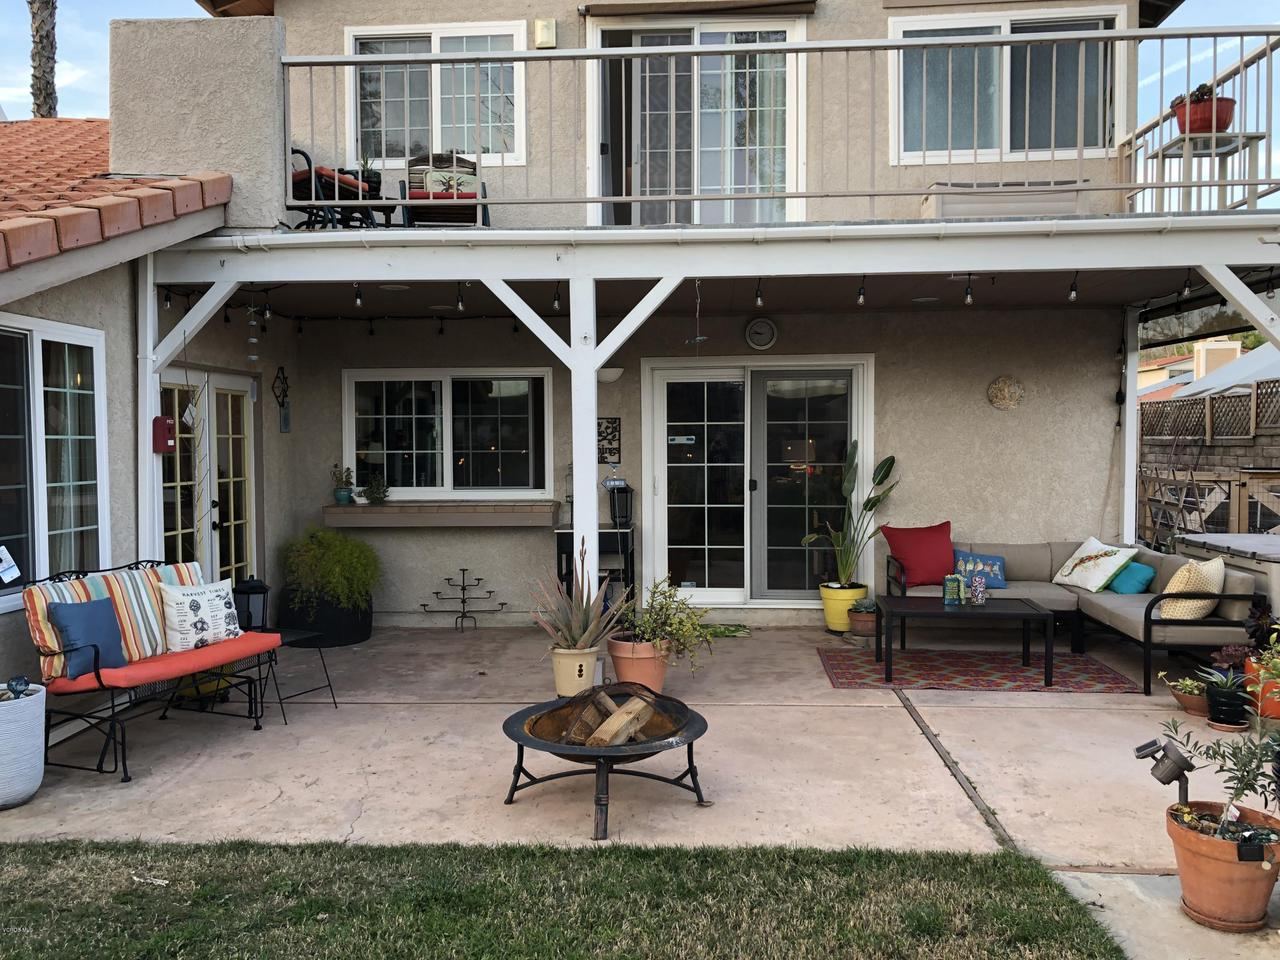 5228 MOHAVE, Simi Valley, CA 93063 - 5228 Mohave Dr 7